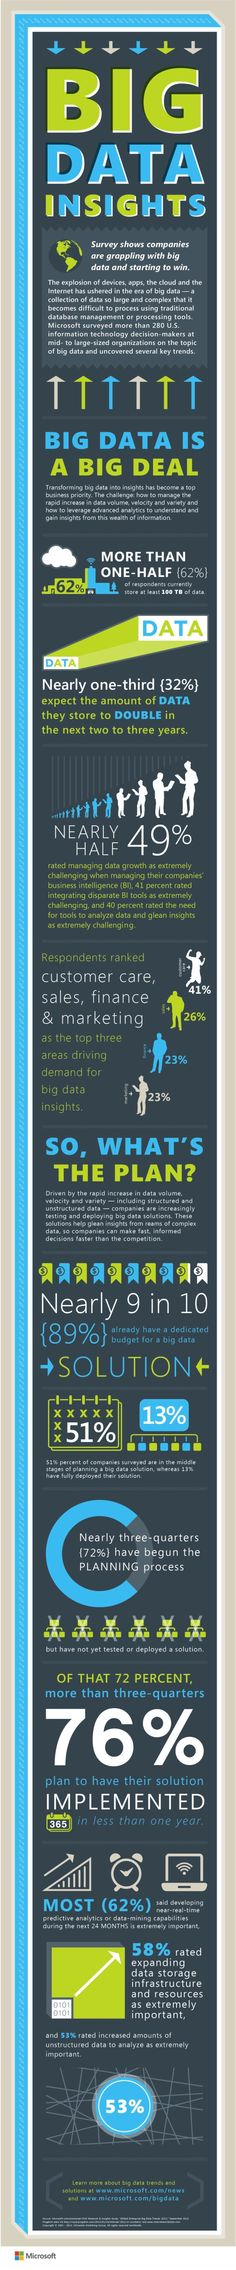 #Infographic: Big Data Insights from Microsoft. Although the IT Department is currently driving most of the demand for big data, customer care, sales, finance and marketing are increasingly driving demand. The volume of data is the greatest challenge driving big data solution adoption, followed by having to integrate disparate business intelligence tools, and having the right tools to be able to glean insight.